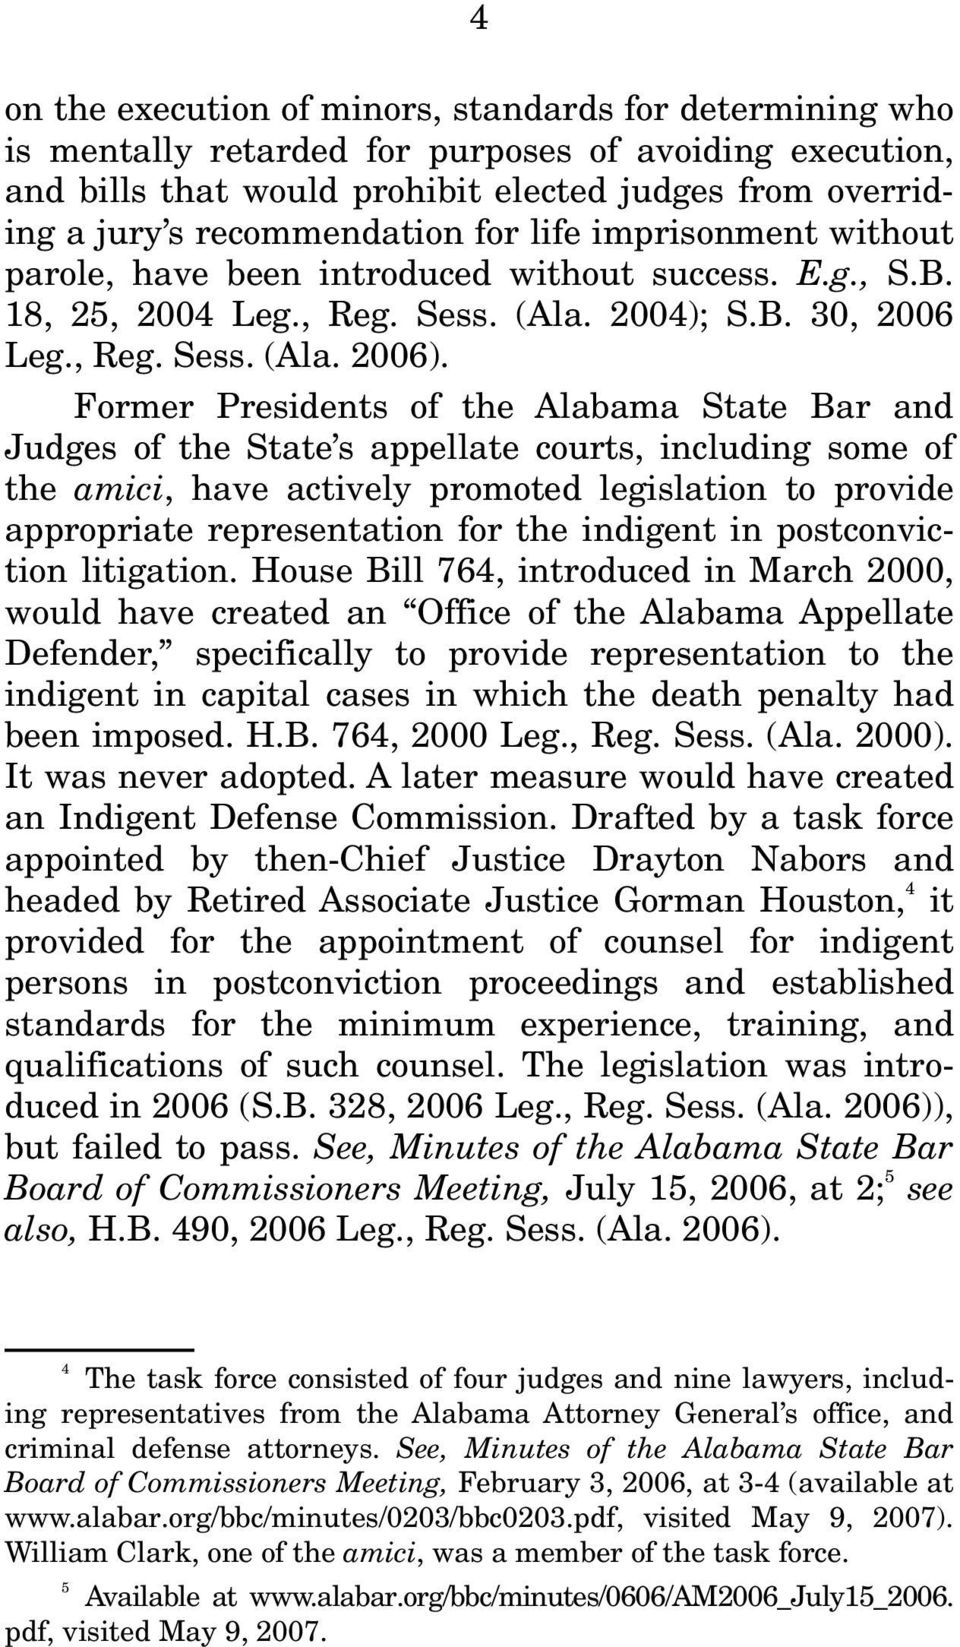 Former Presidents of the Alabama State Bar and Judges of the State s appellate courts, including some of the amici, have actively promoted legislation to provide appropriate representation for the